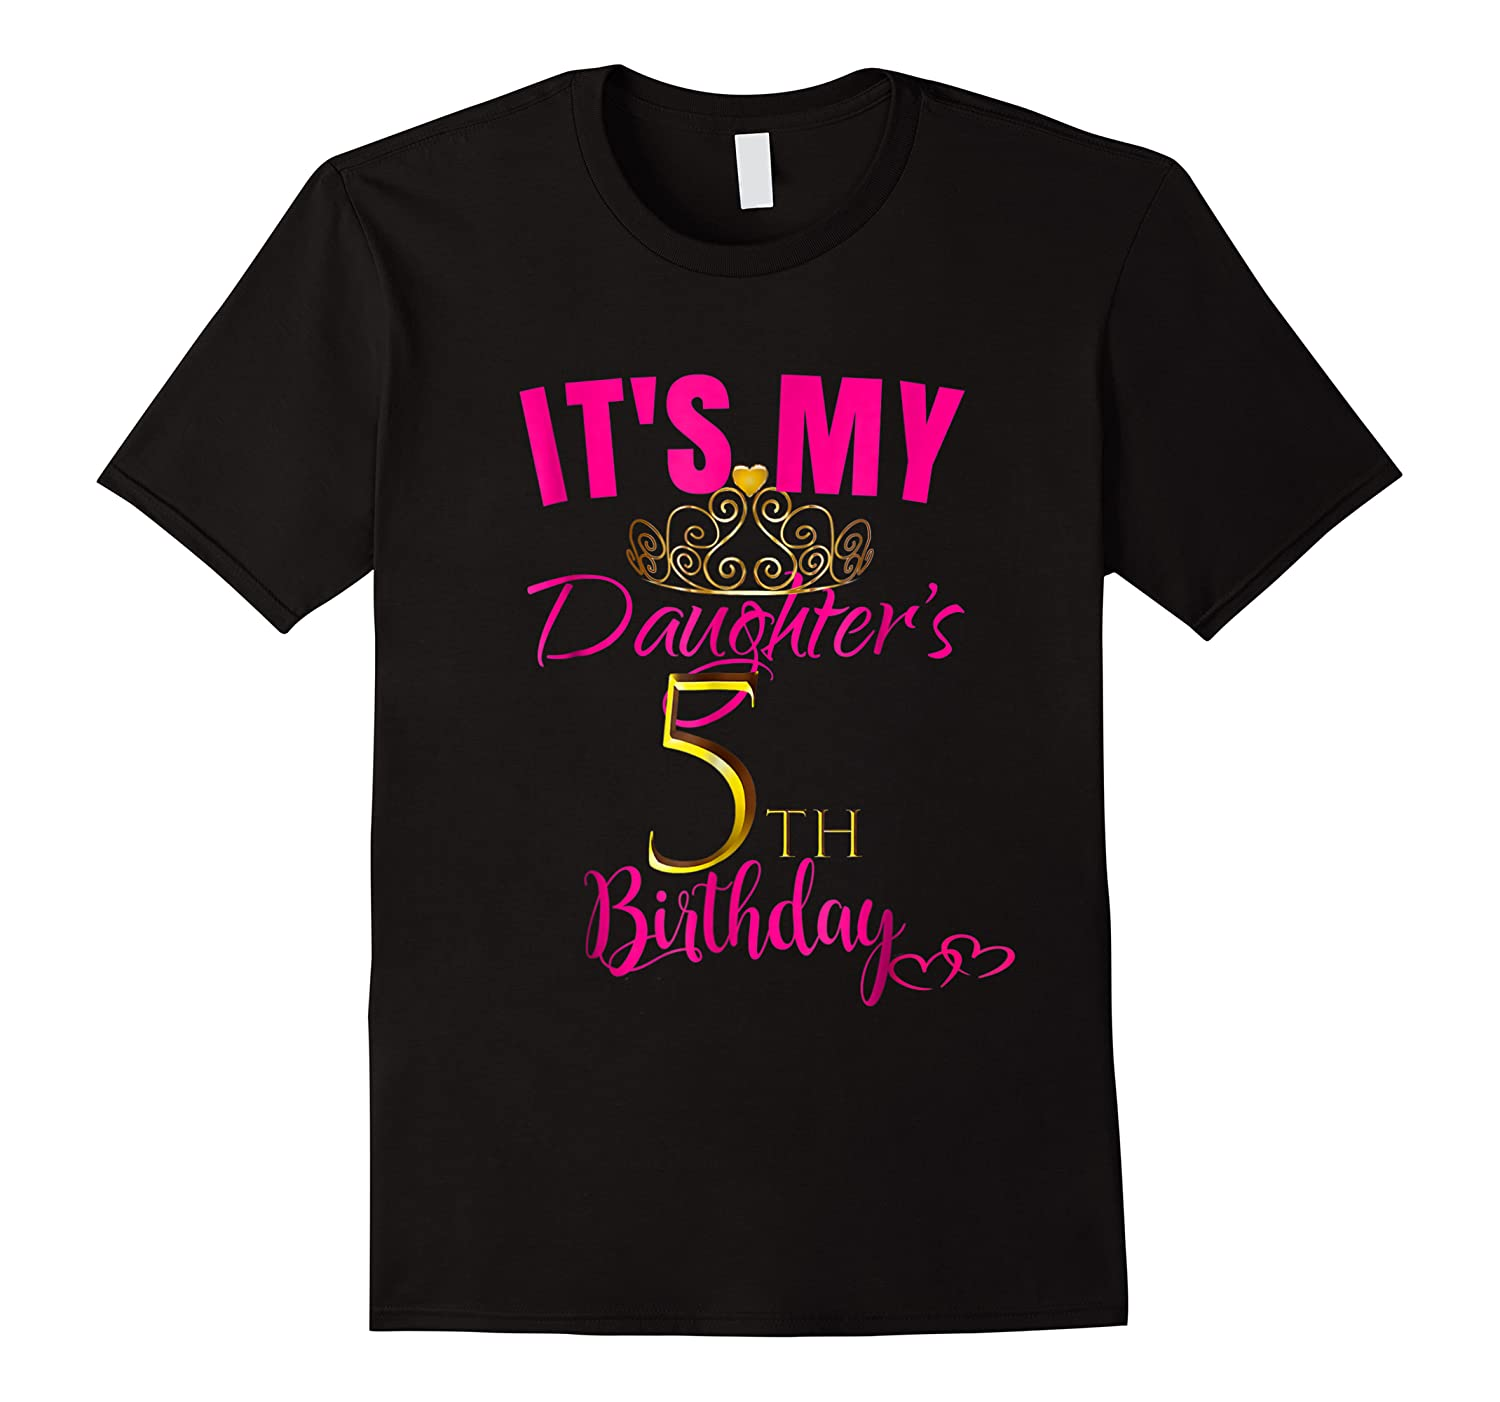 Cute It's My Daughter's 5th Birthday Party Out Shirts